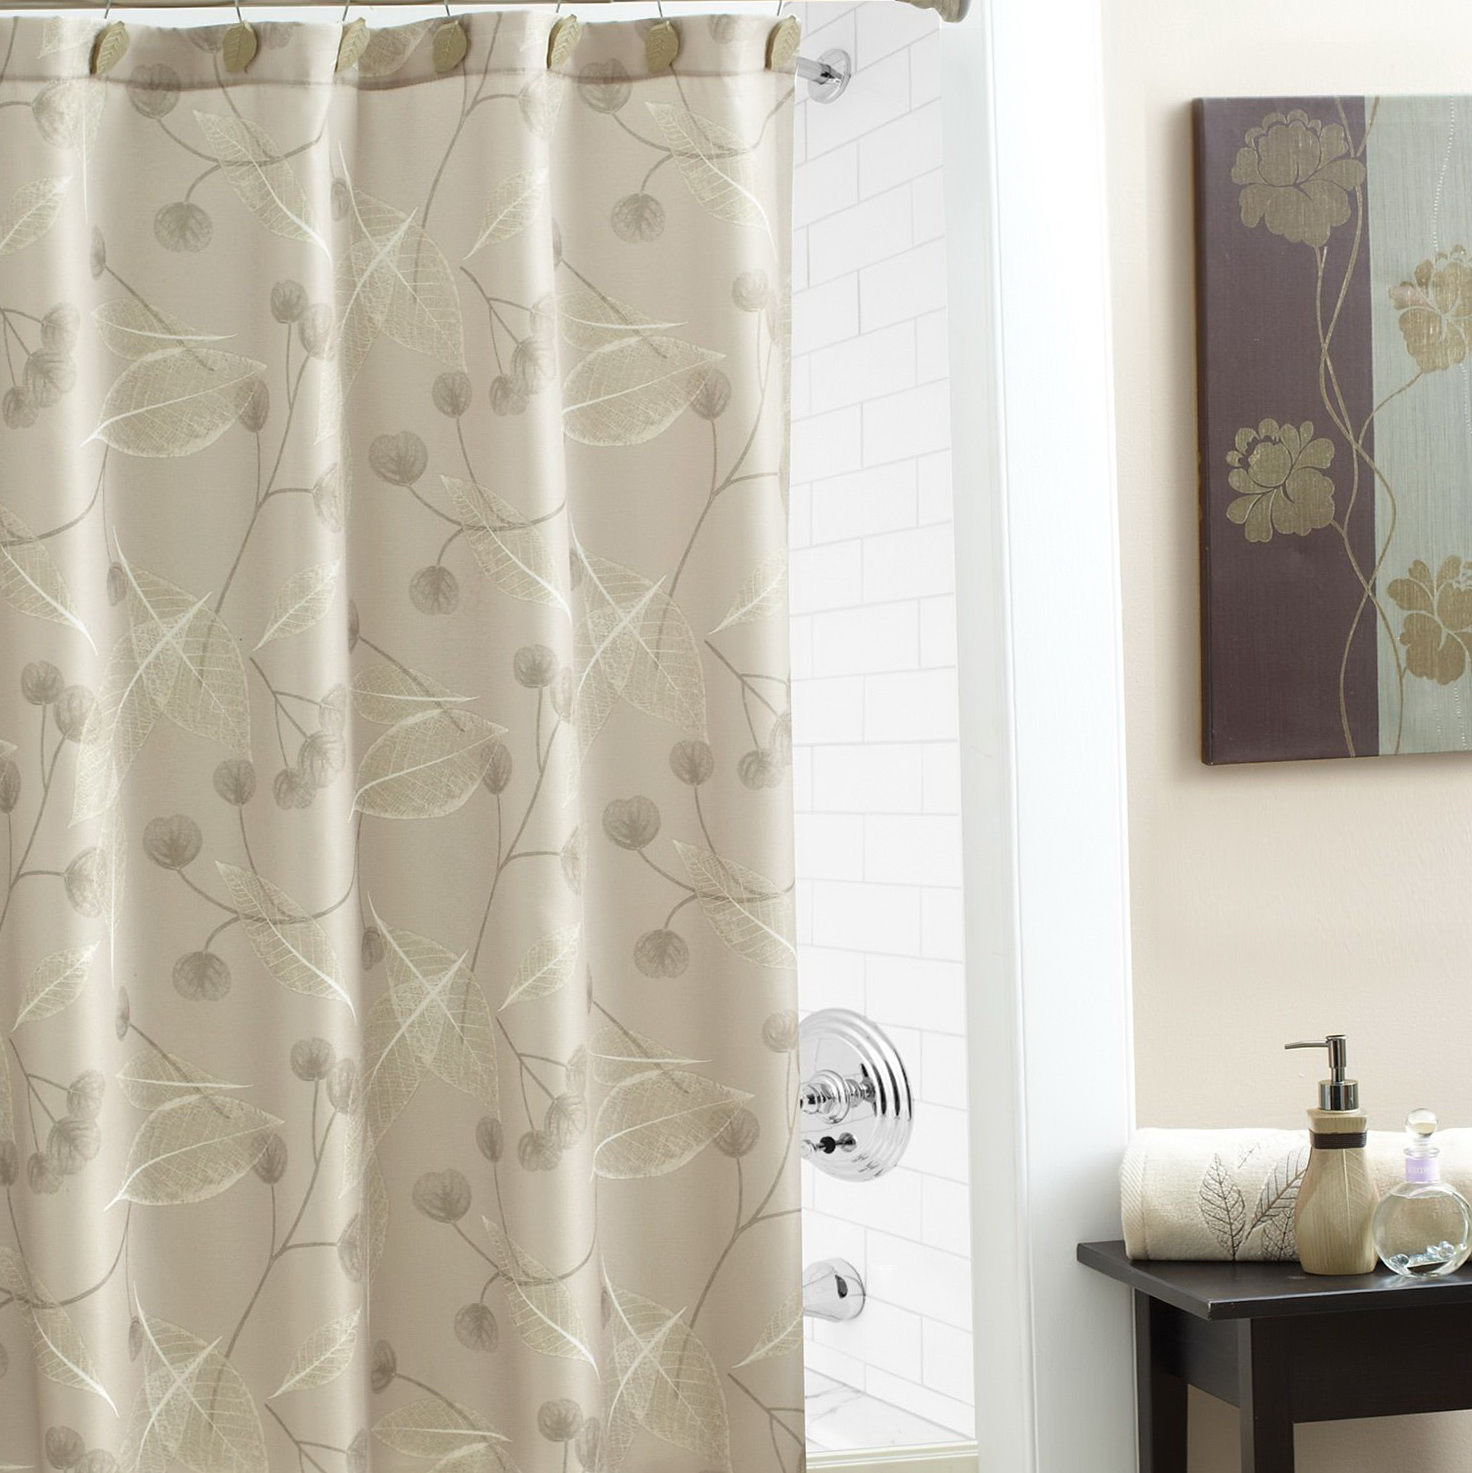 Elegant Shower Curtains With Valance Home Design Ideas